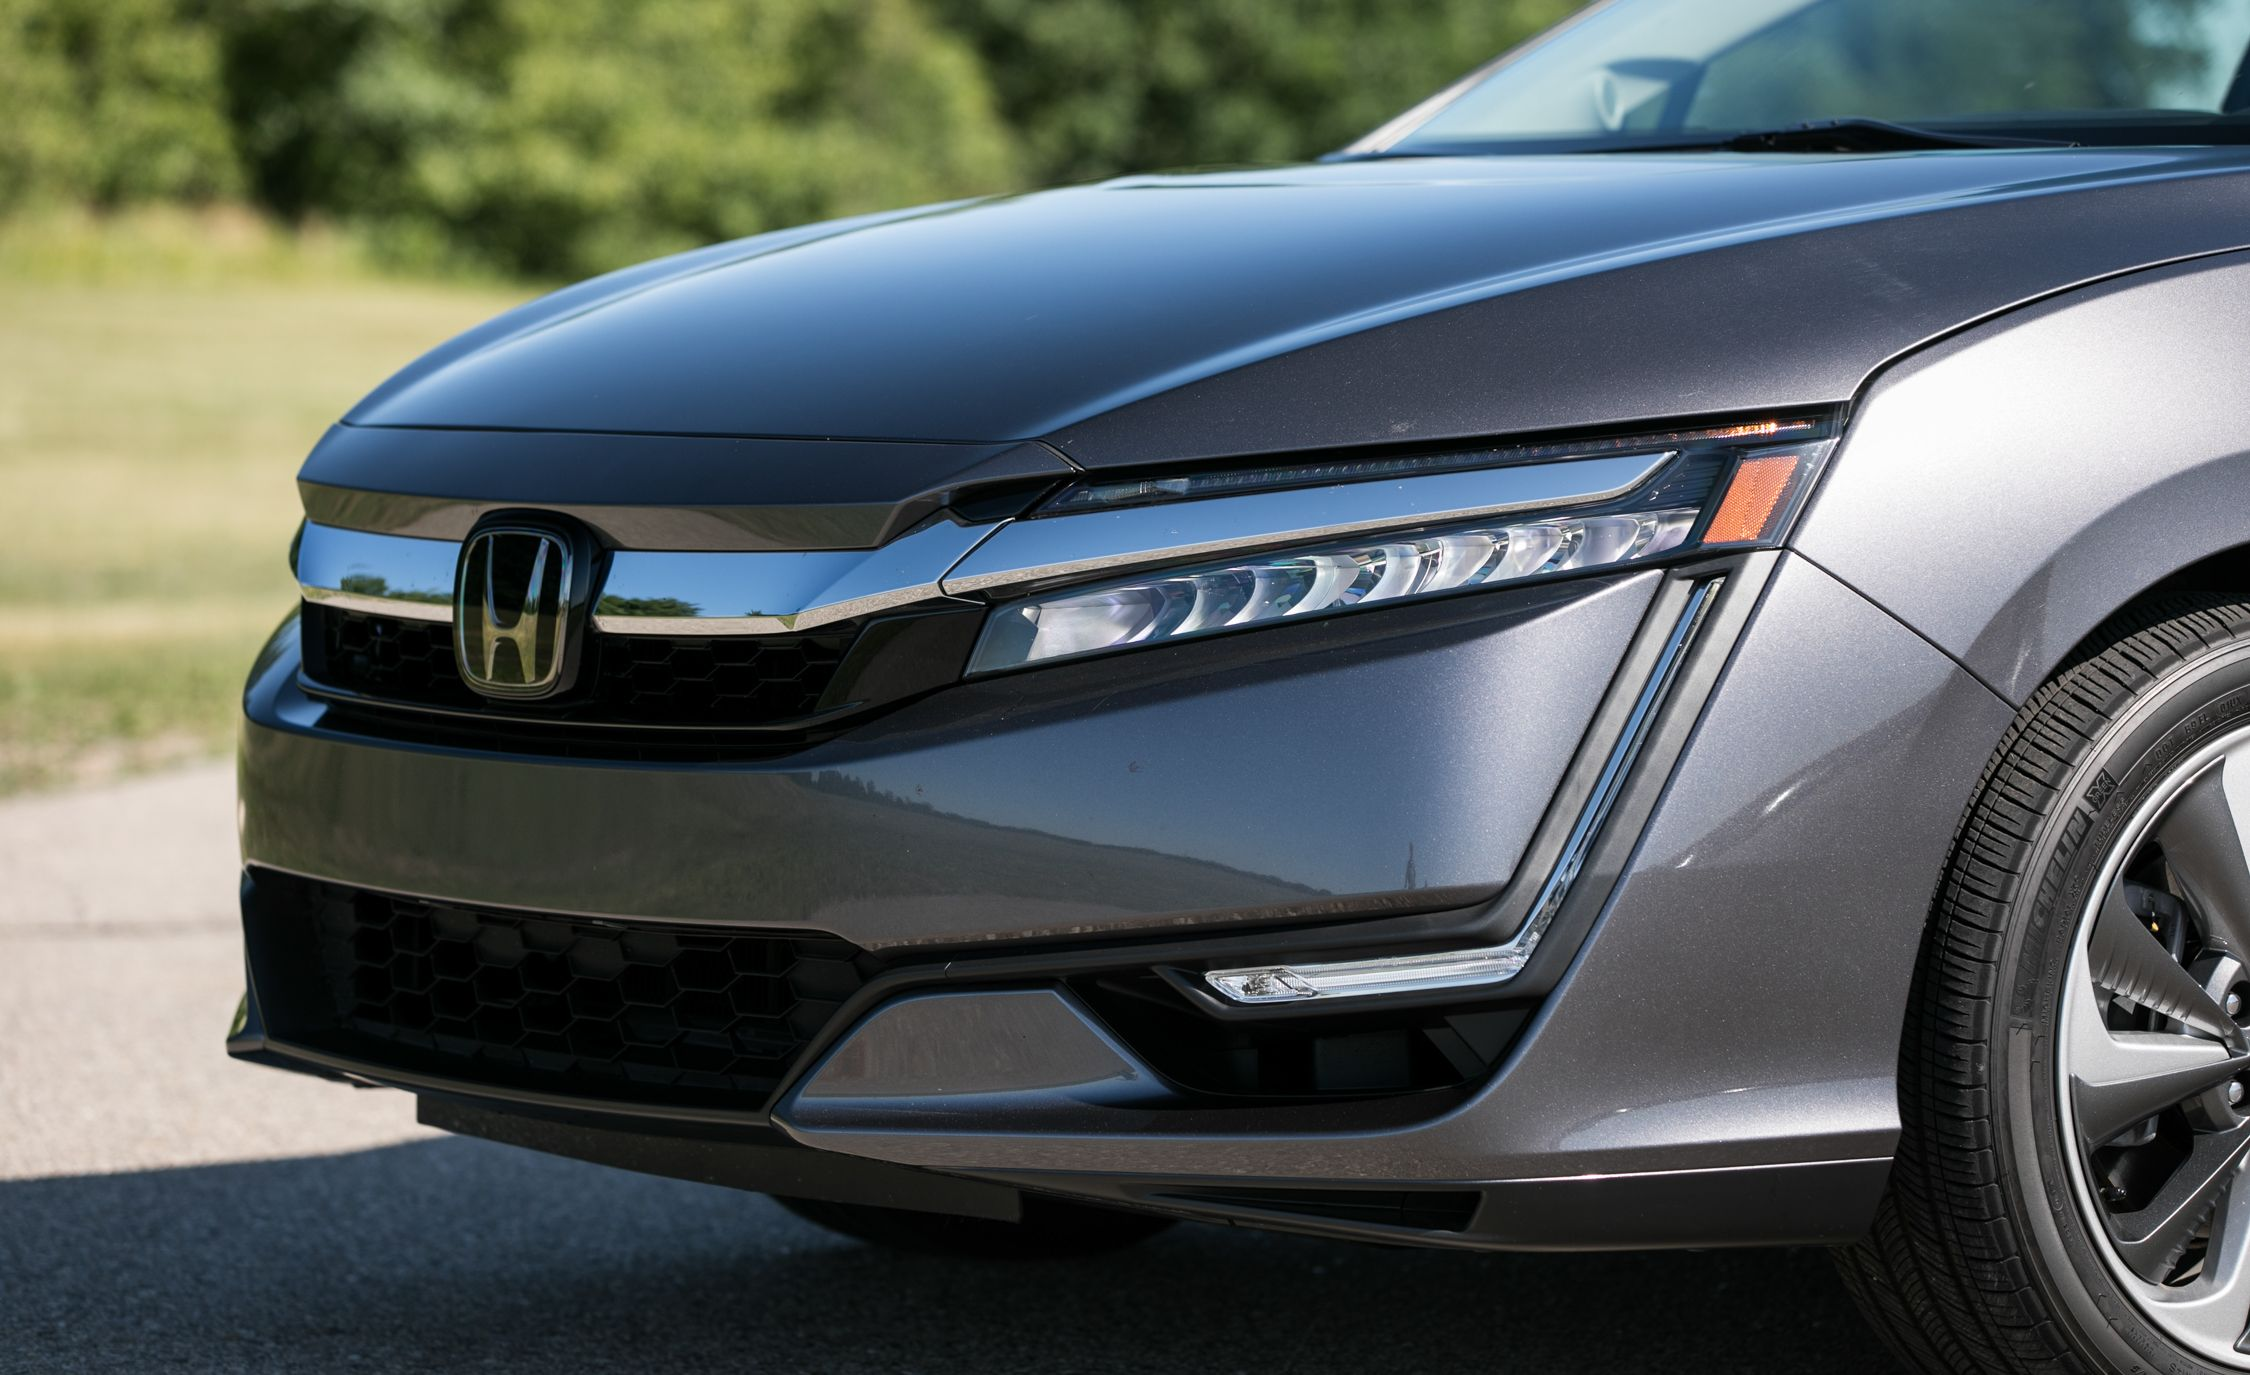 Honda Clarity Reviews | Honda Clarity Price, Photos, And Specs | Car And  Driver